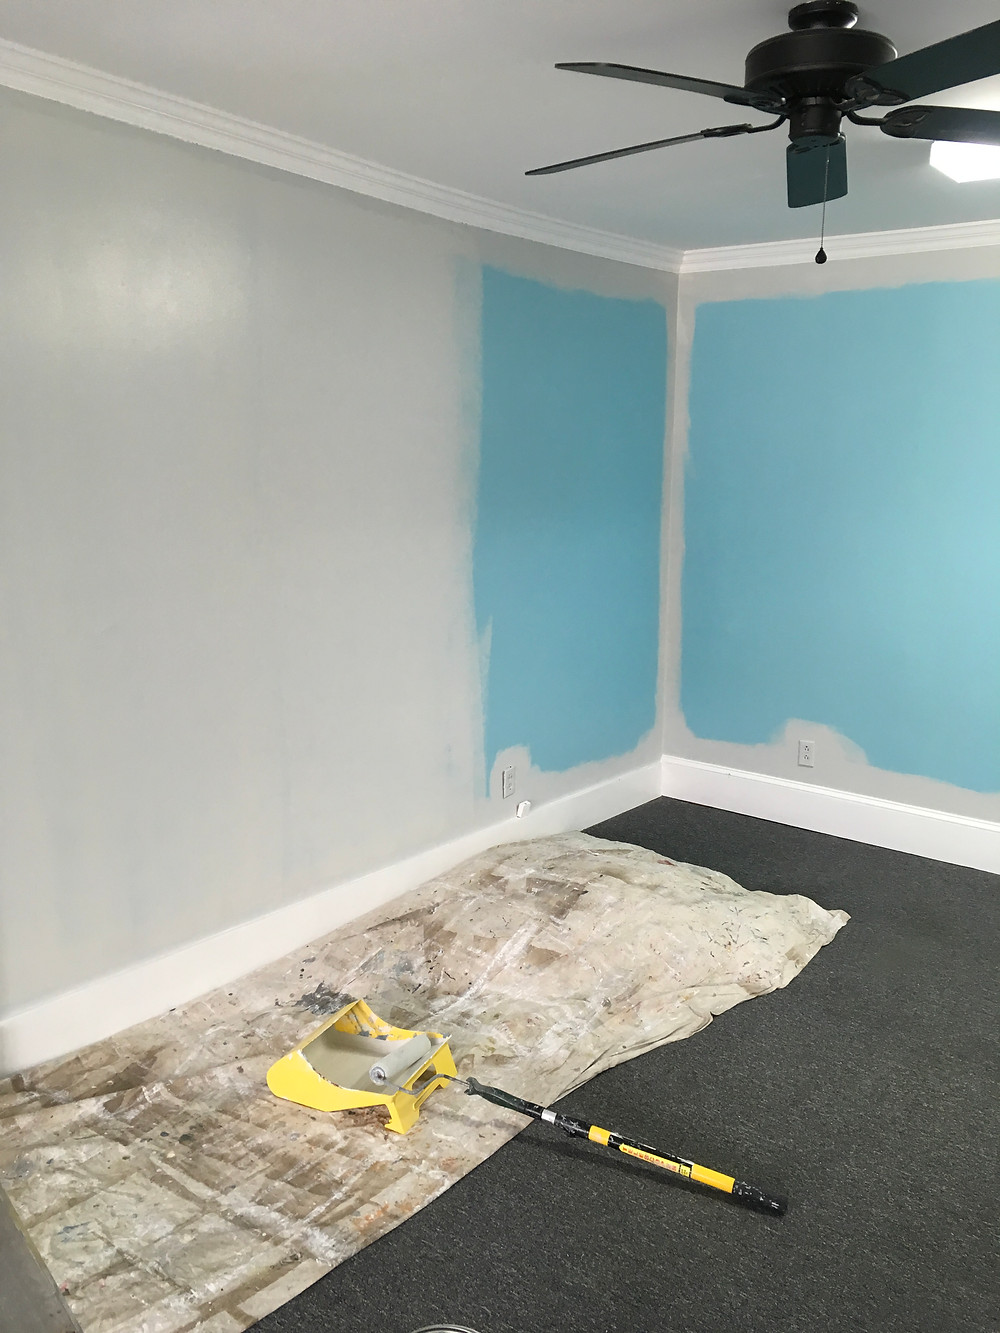 Interior walls of new studio in the process of being painted